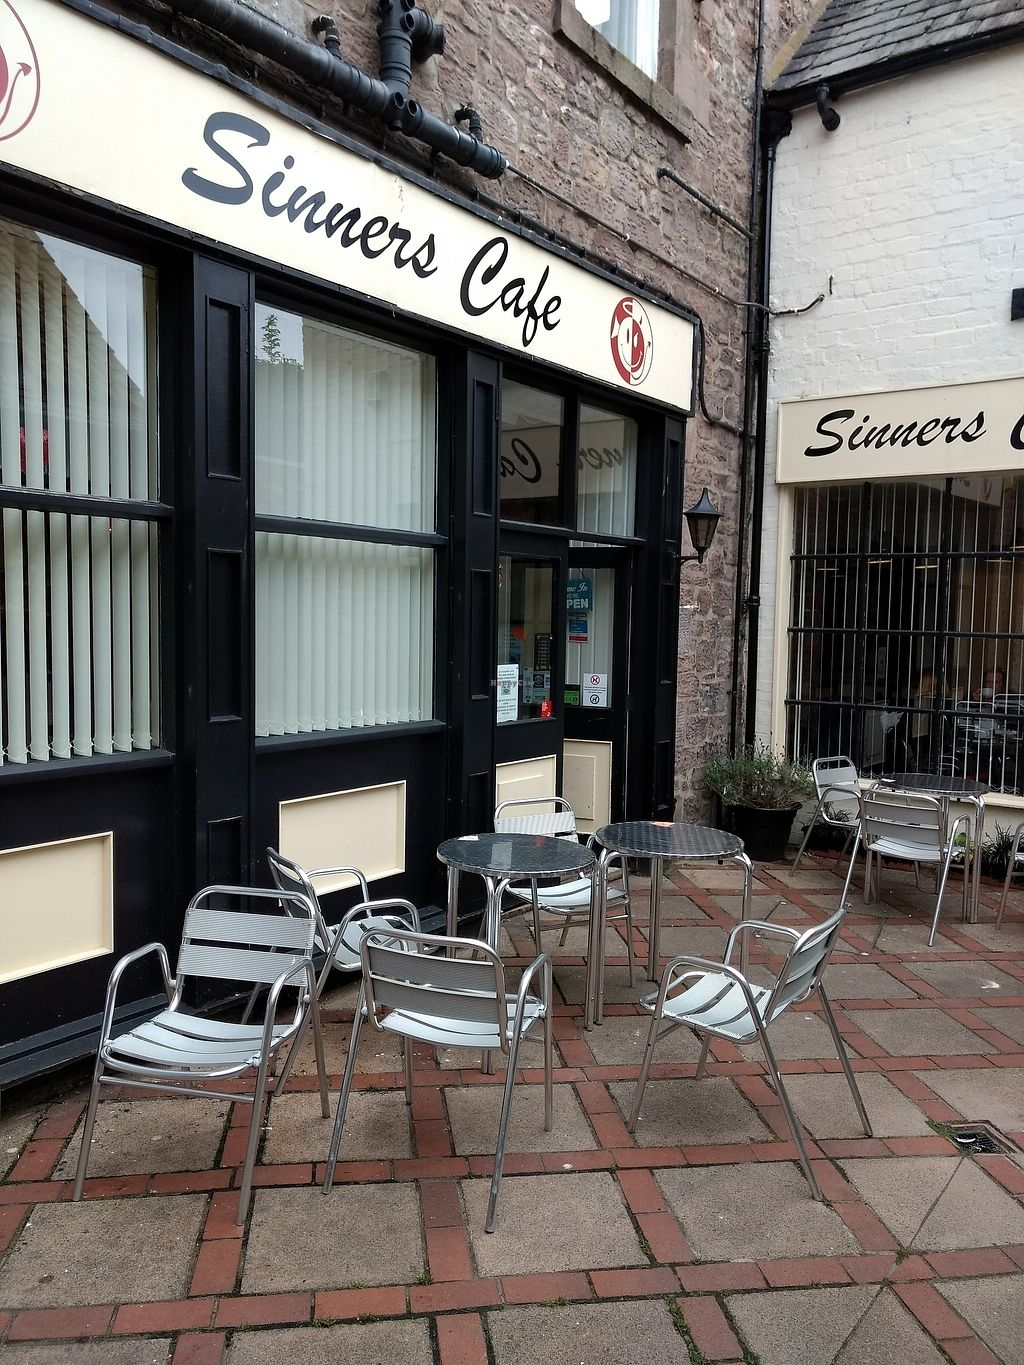 "Photo of Sinners Cafe  by <a href=""/members/profile/craigmc"">craigmc</a> <br/>you could sit here if it was sunny <br/> July 26, 2017  - <a href='/contact/abuse/image/38242/285165'>Report</a>"